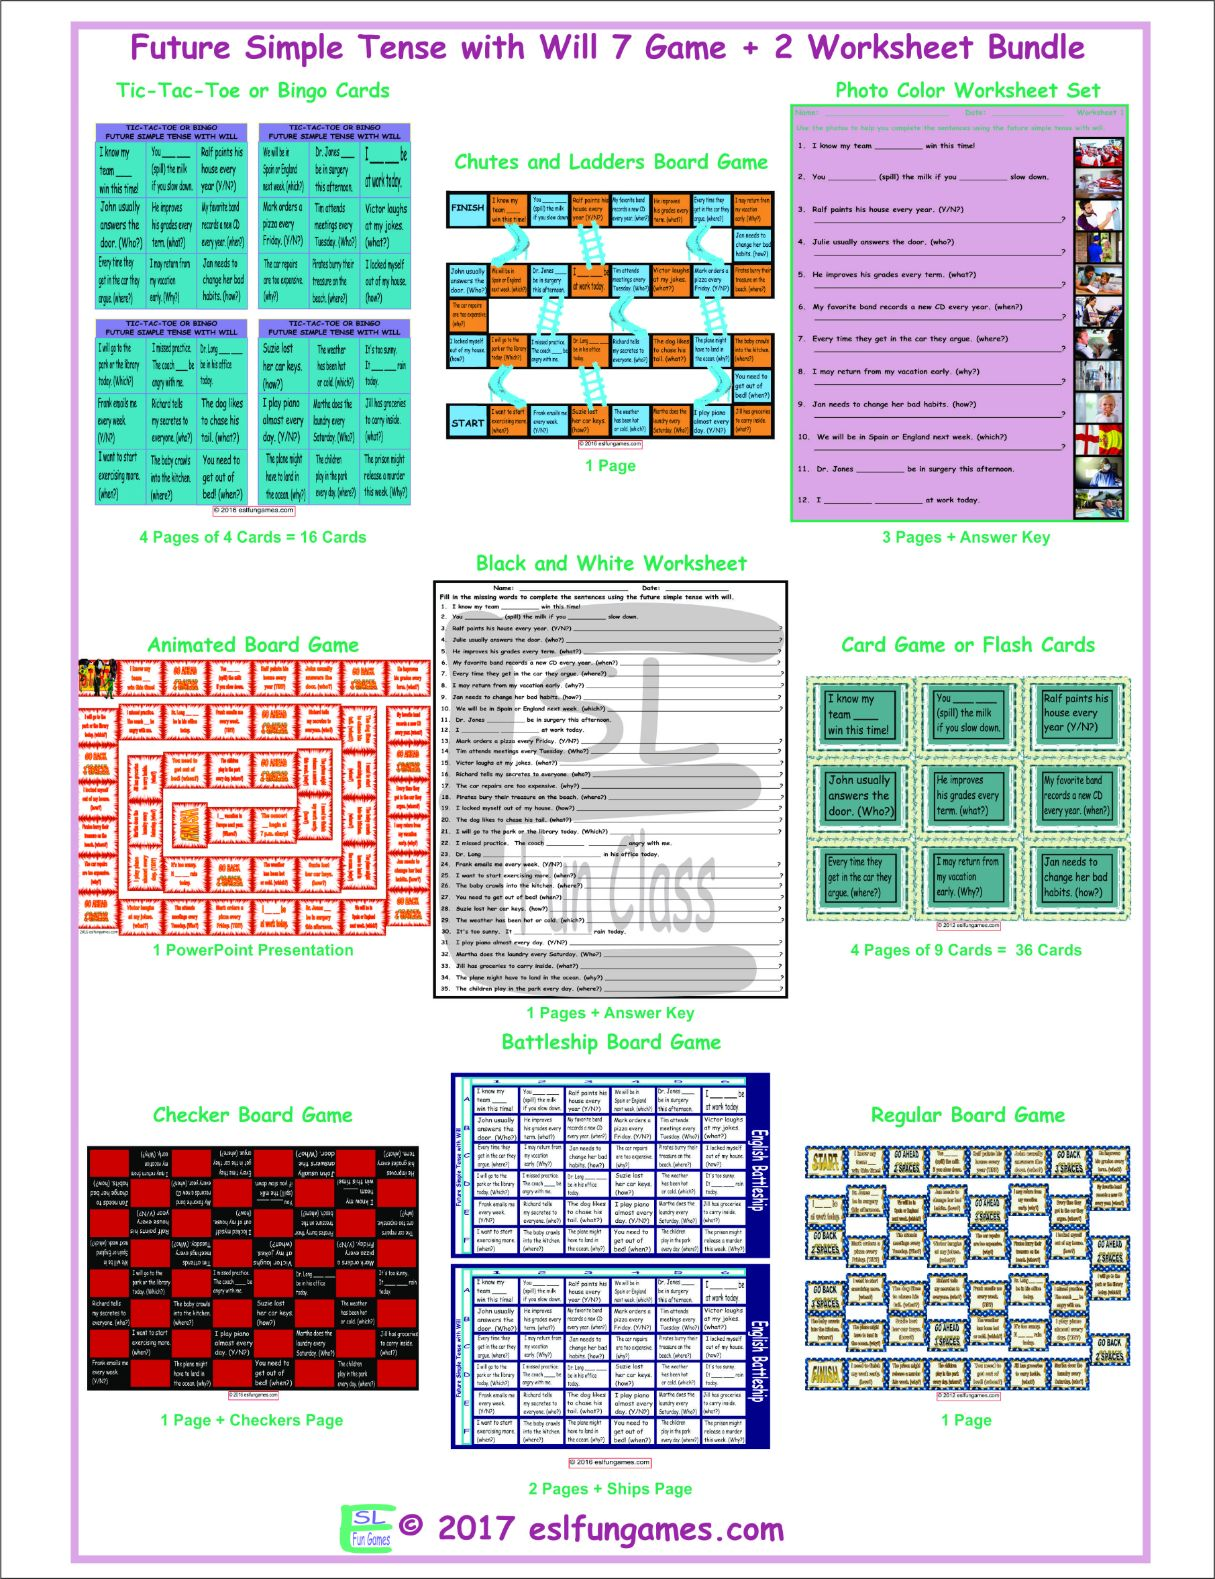 Future Simple Tense With Will 7 Game Plus 2 Worksheet